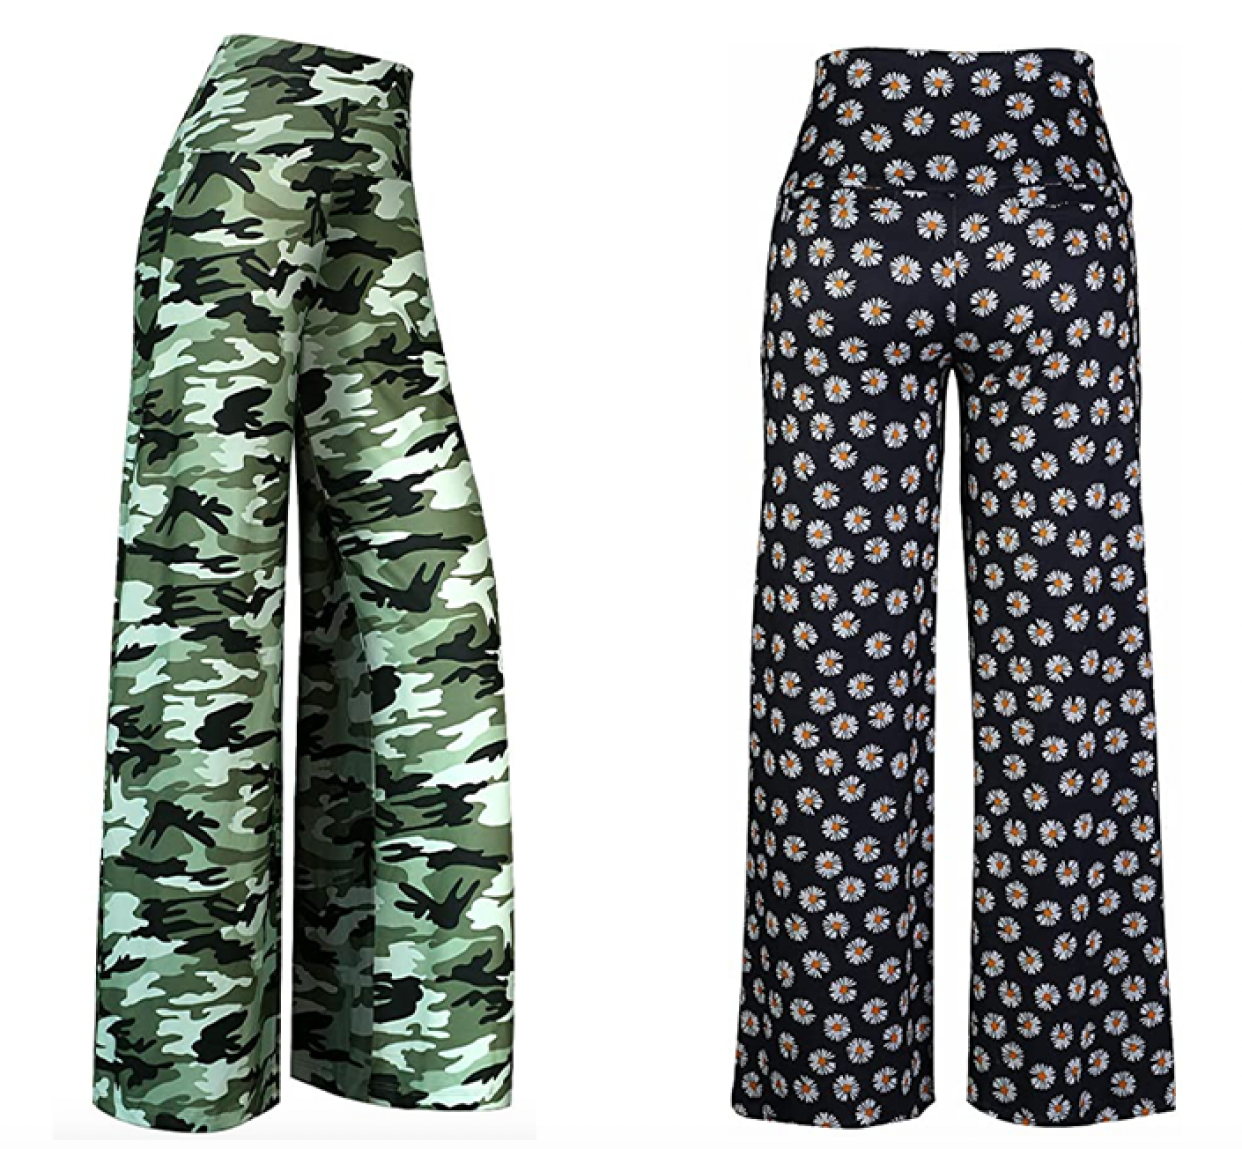 We like to picture Cher lounging around in these patterns. There are more than 30 to choose from! (Photo: Amazon)